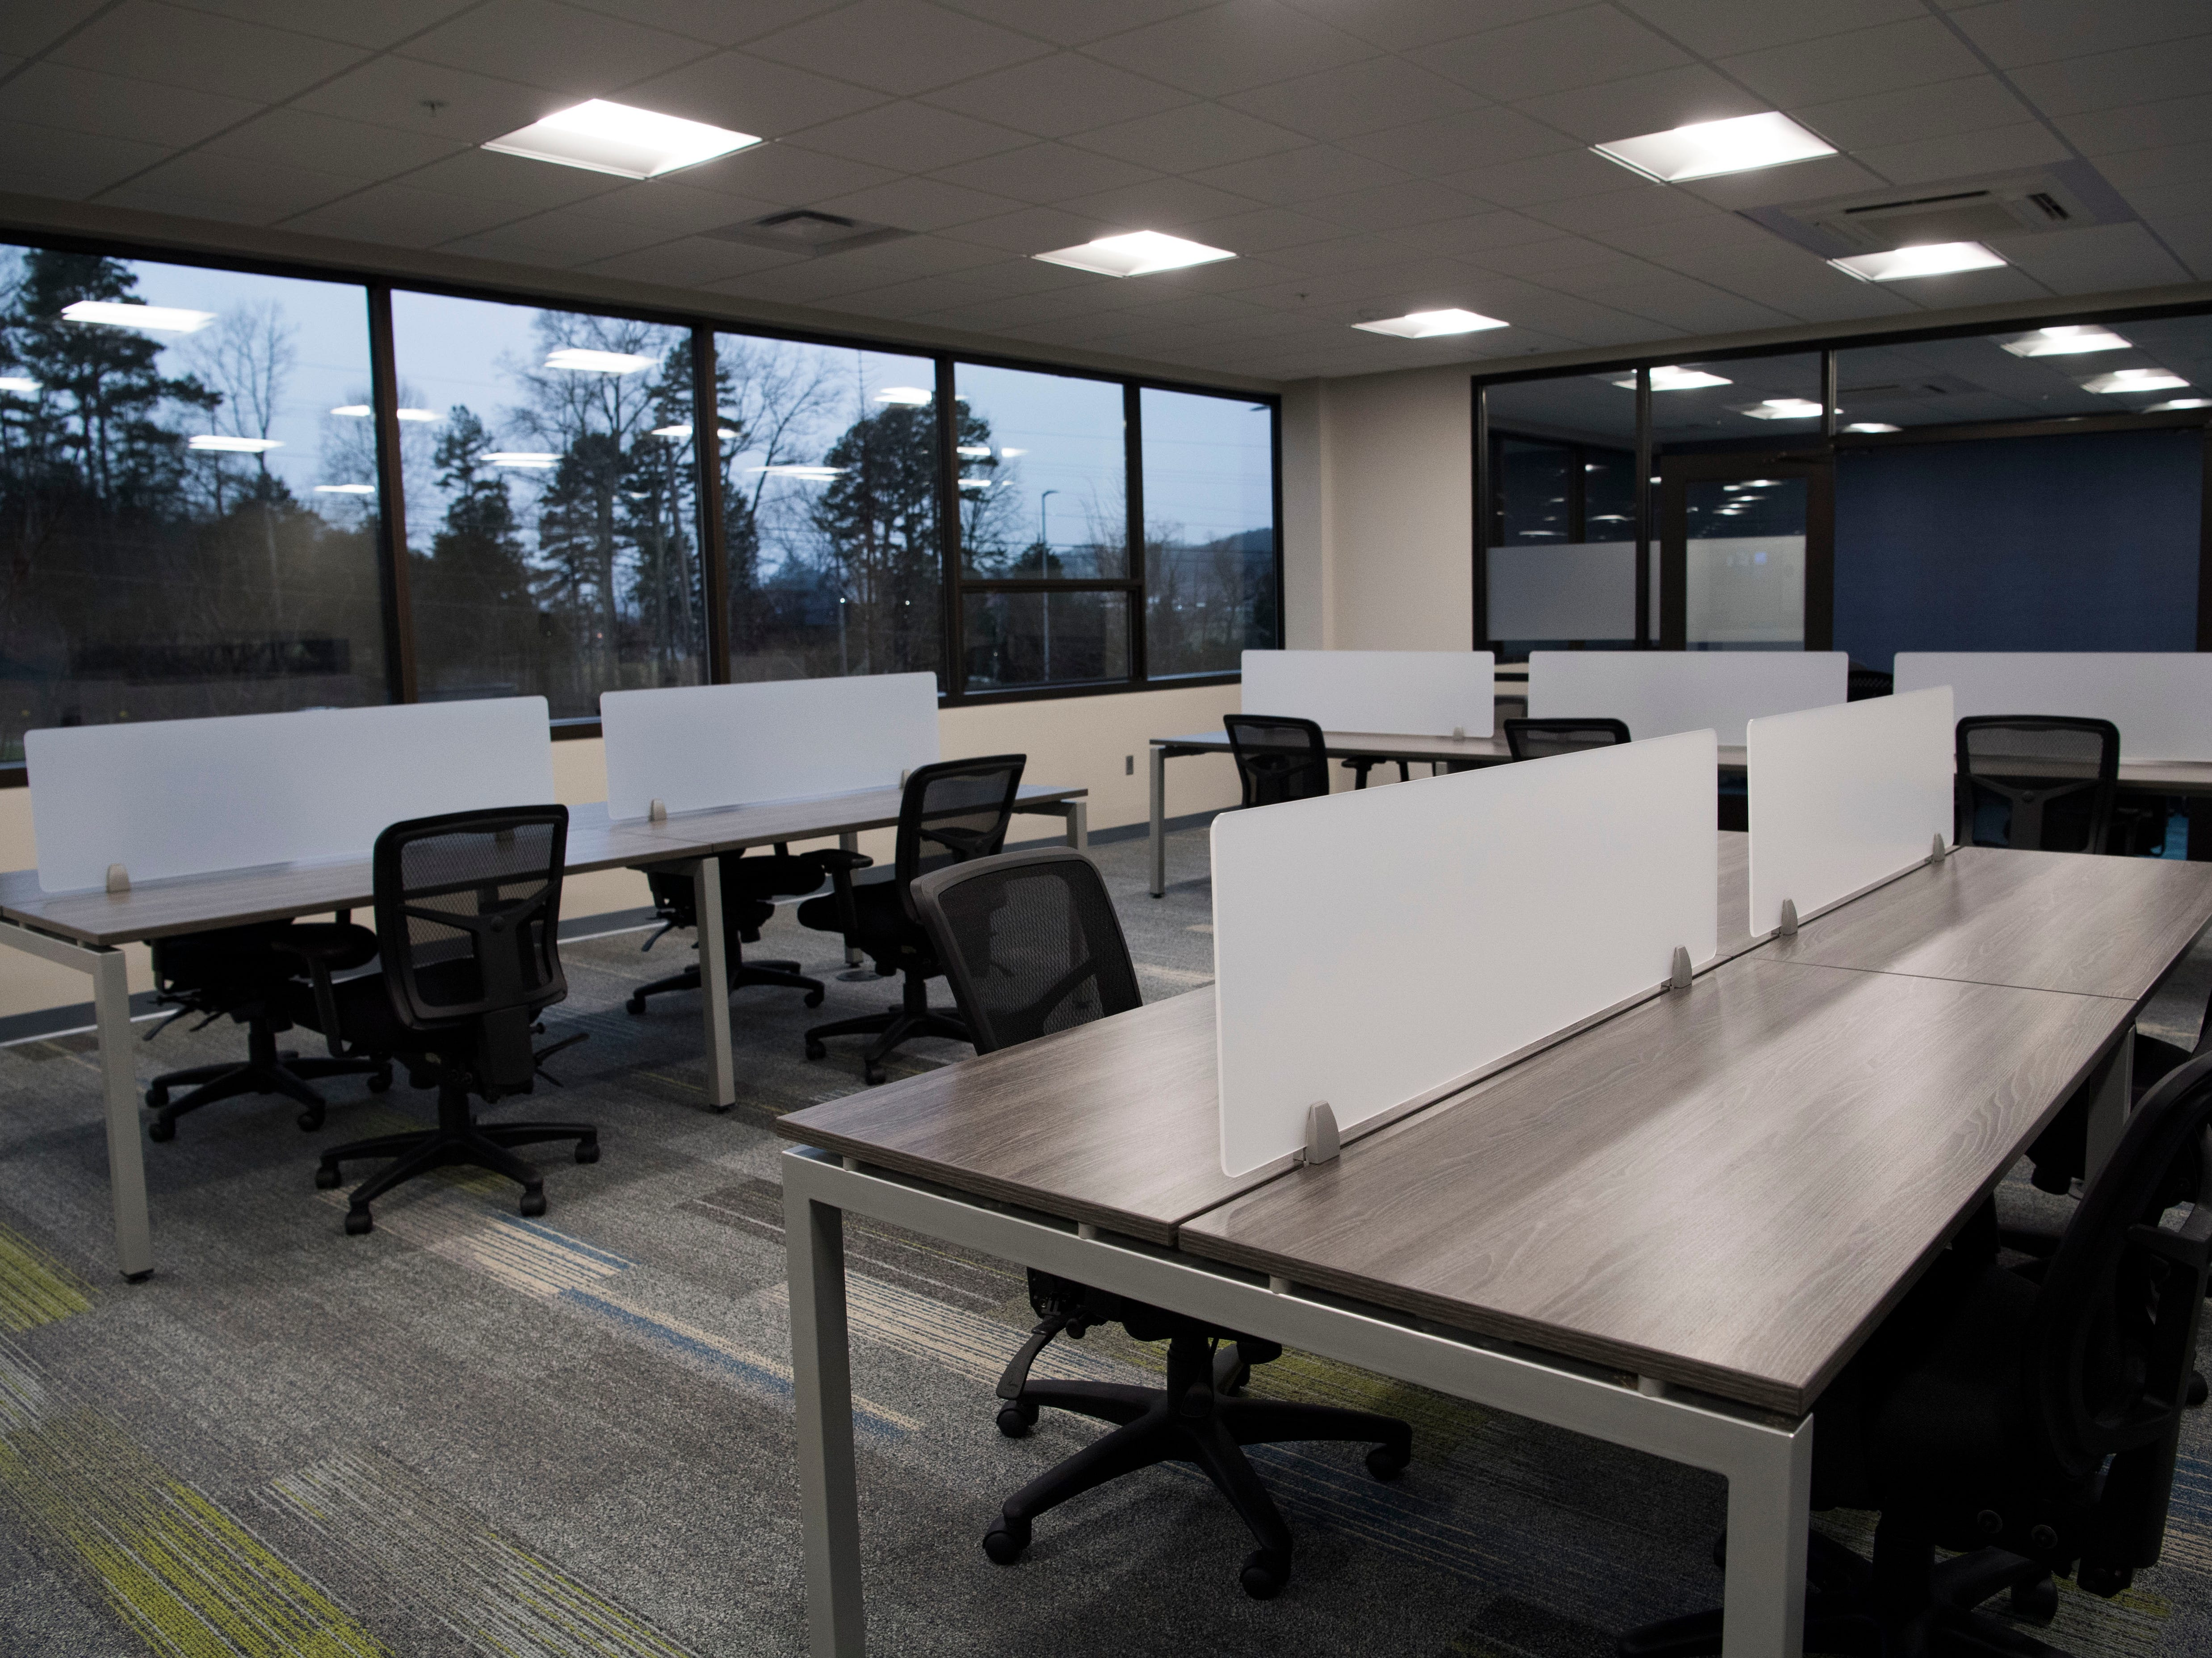 Ts117 is a new coworking space in Oak Ridge run by brothers Rick and Ryan Chinn, Tuesday, Feb. 19, 2019.